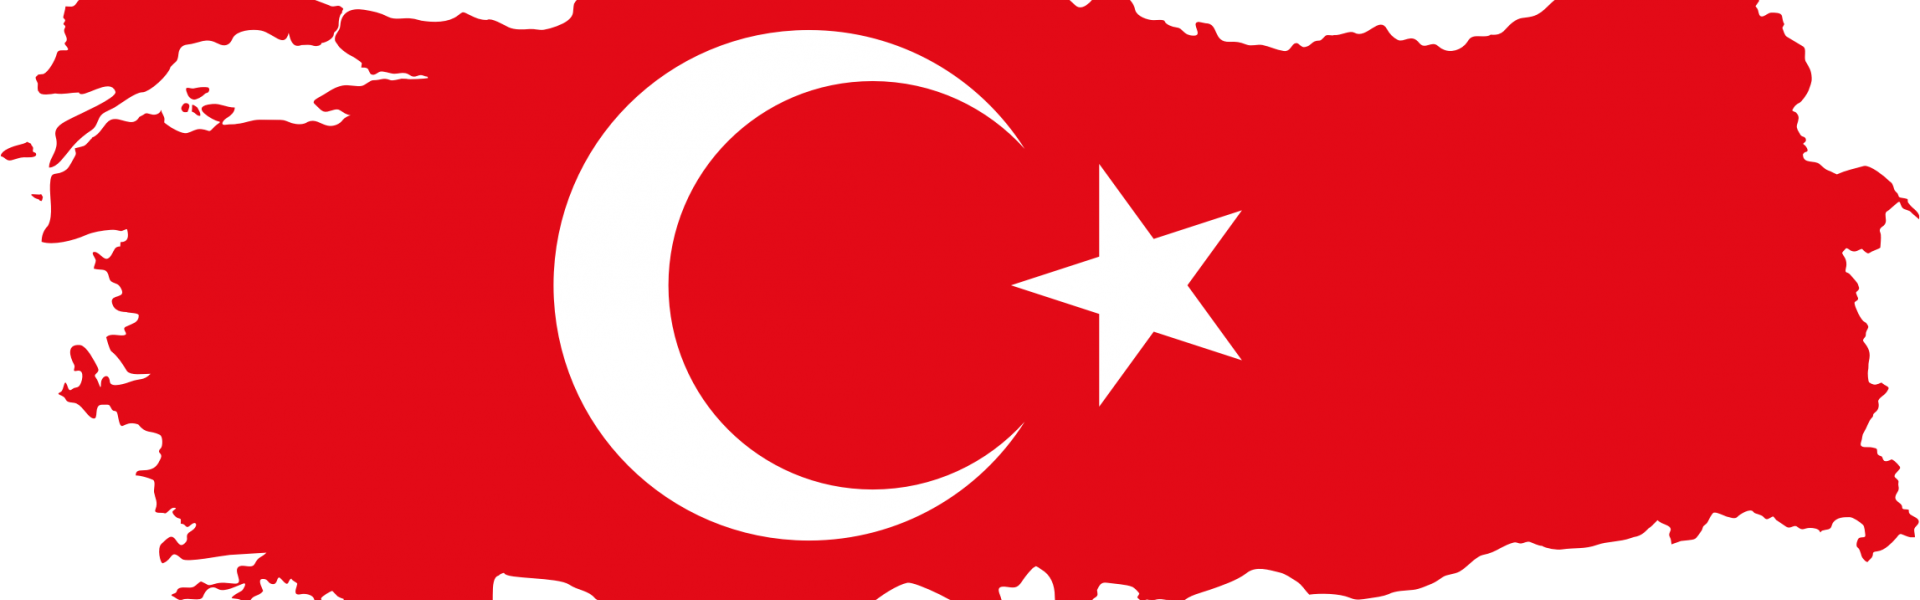 Clipart of turkey in red vector transparent download Nationalism at core of Turks' support for wars on Kurds | Ahval vector transparent download